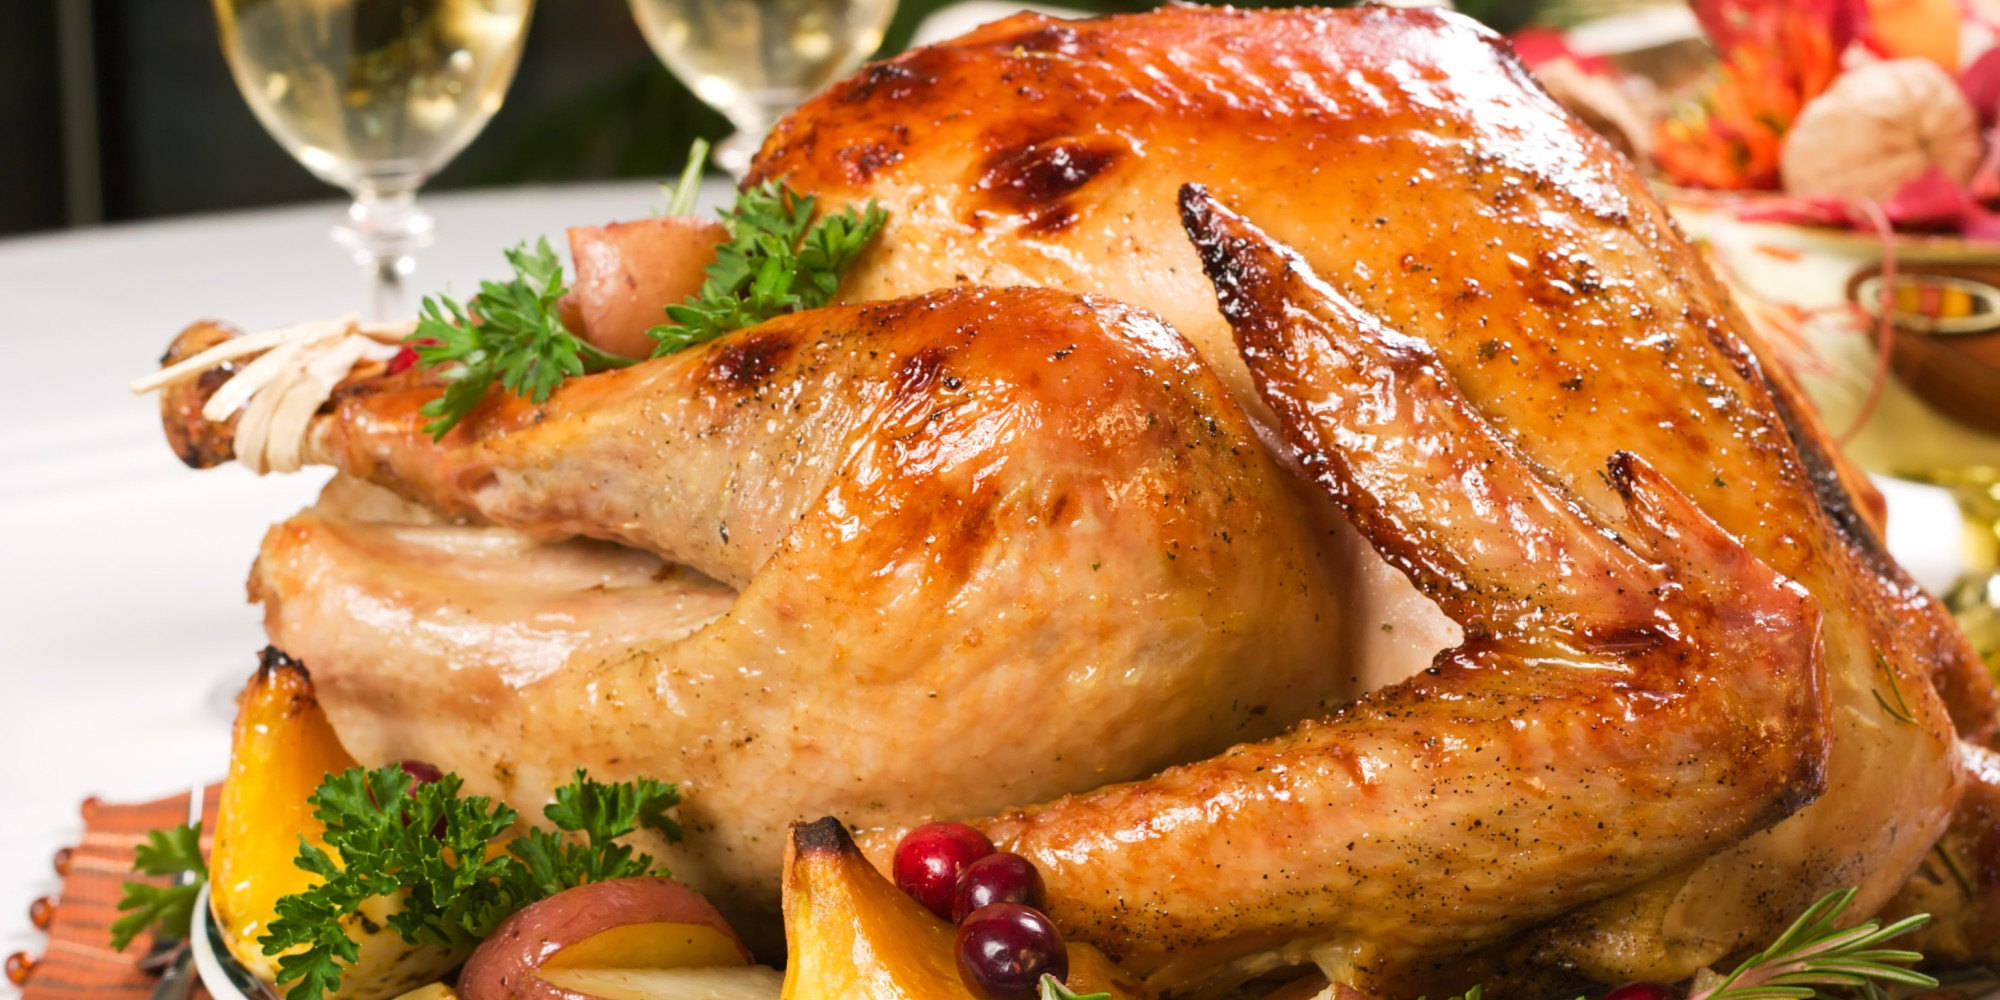 48,835 Reasons to Enjoy Lots of Food This Thanksgiving ...